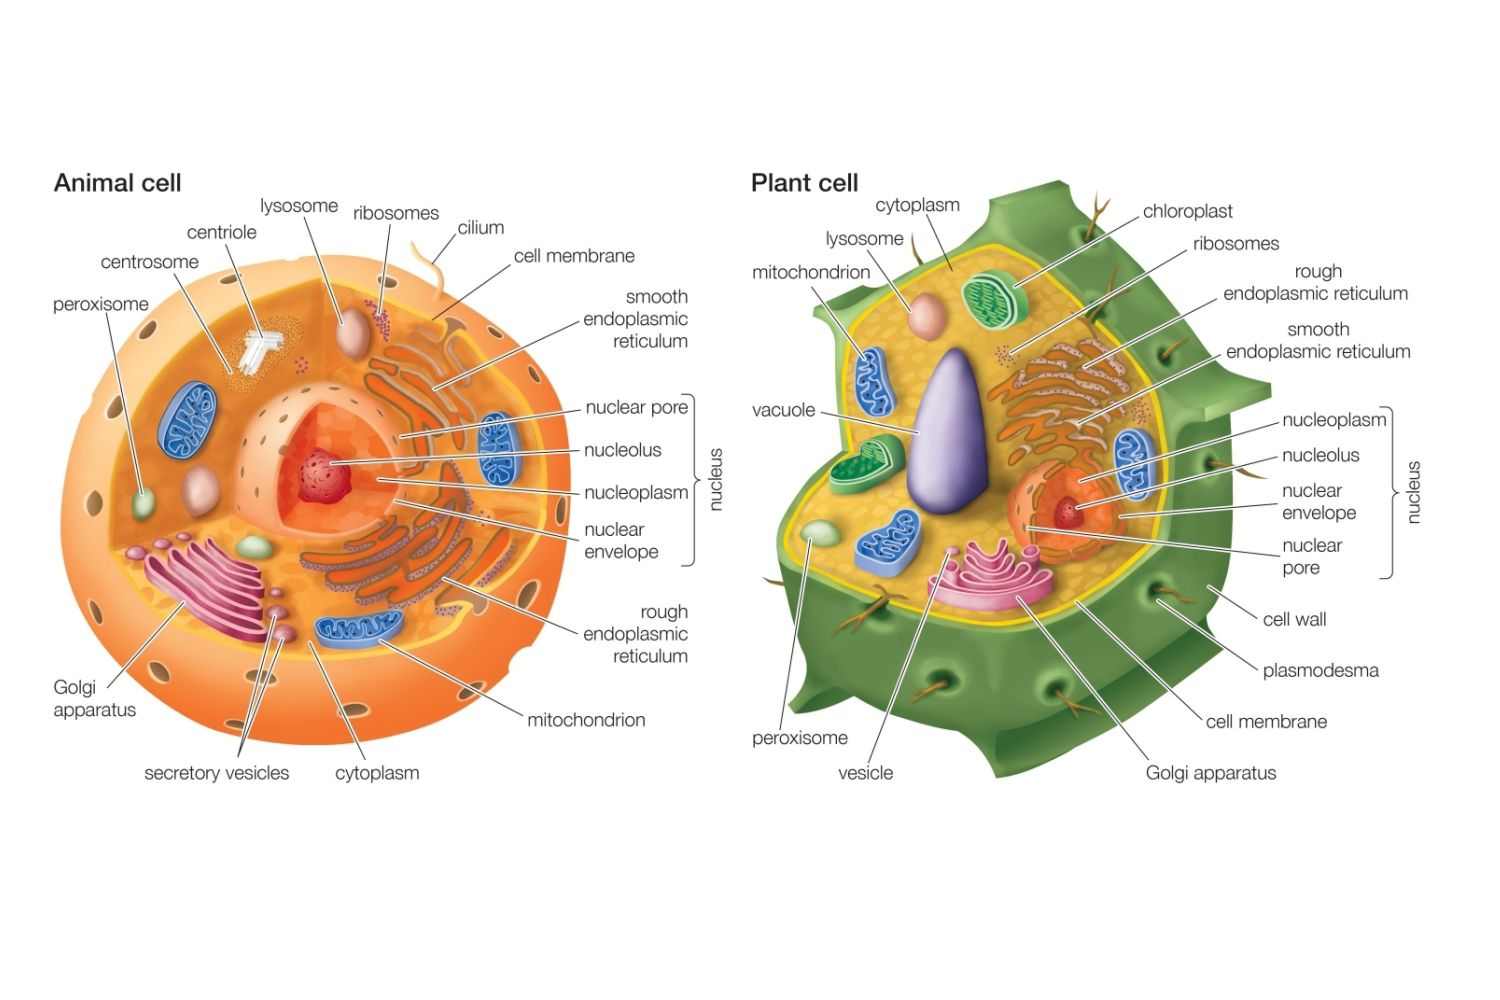 Plant Cell Diagram Differences Between Plant And Animal Cells